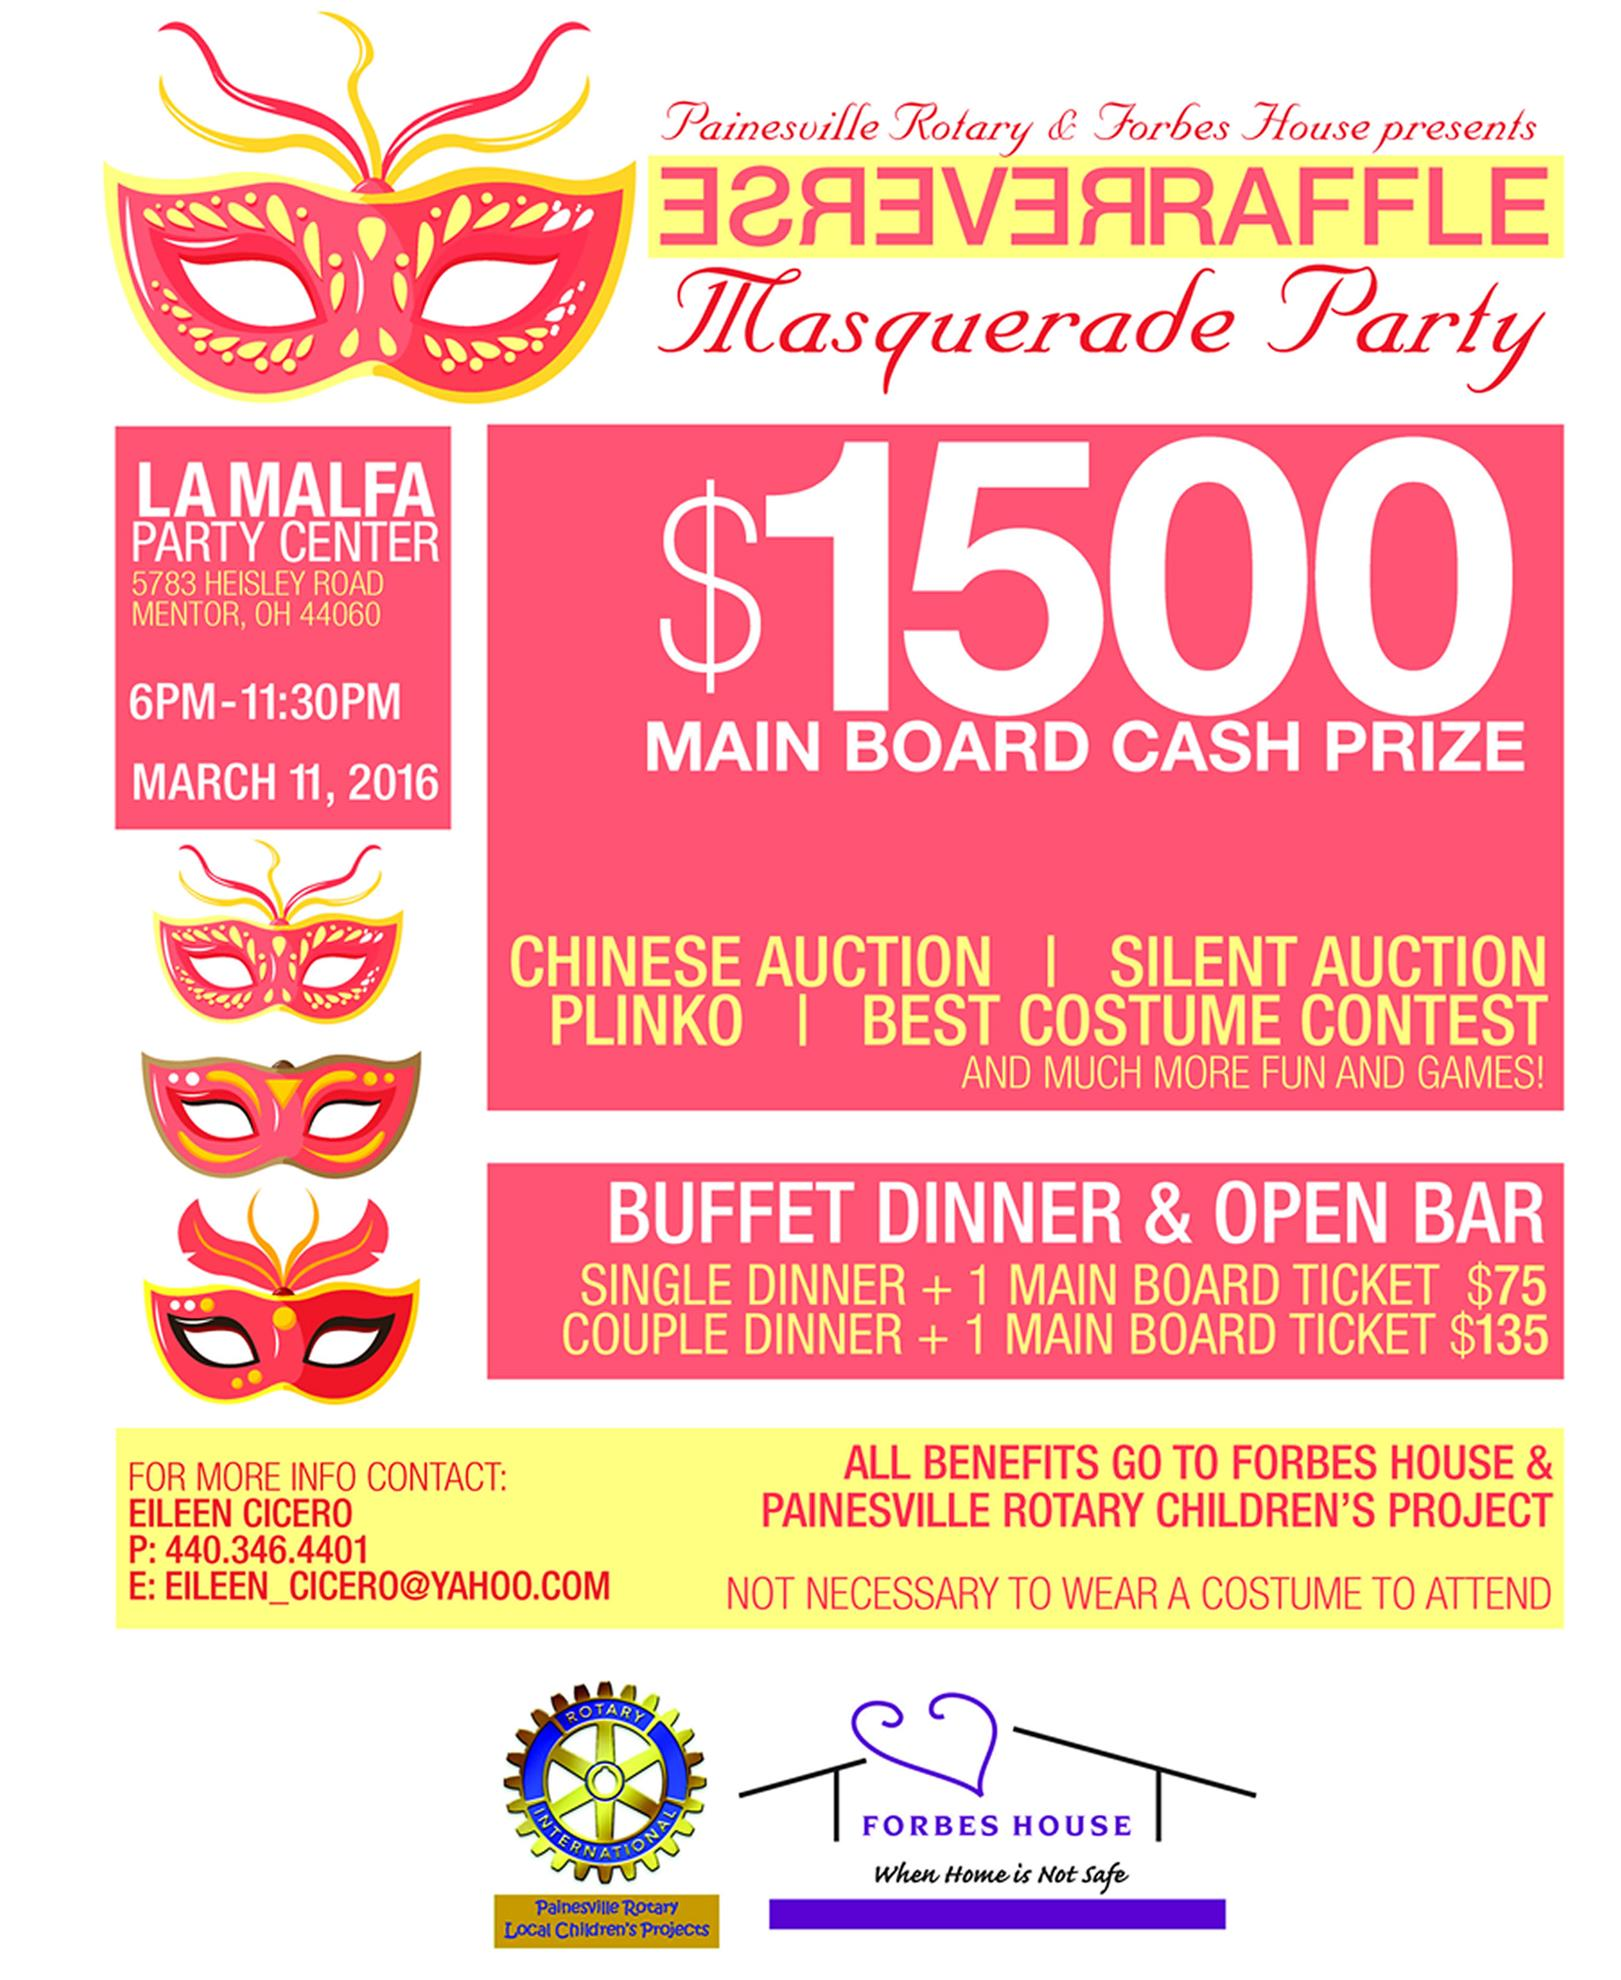 painesville rotary reverse raffle masquerade party 3 11 2016